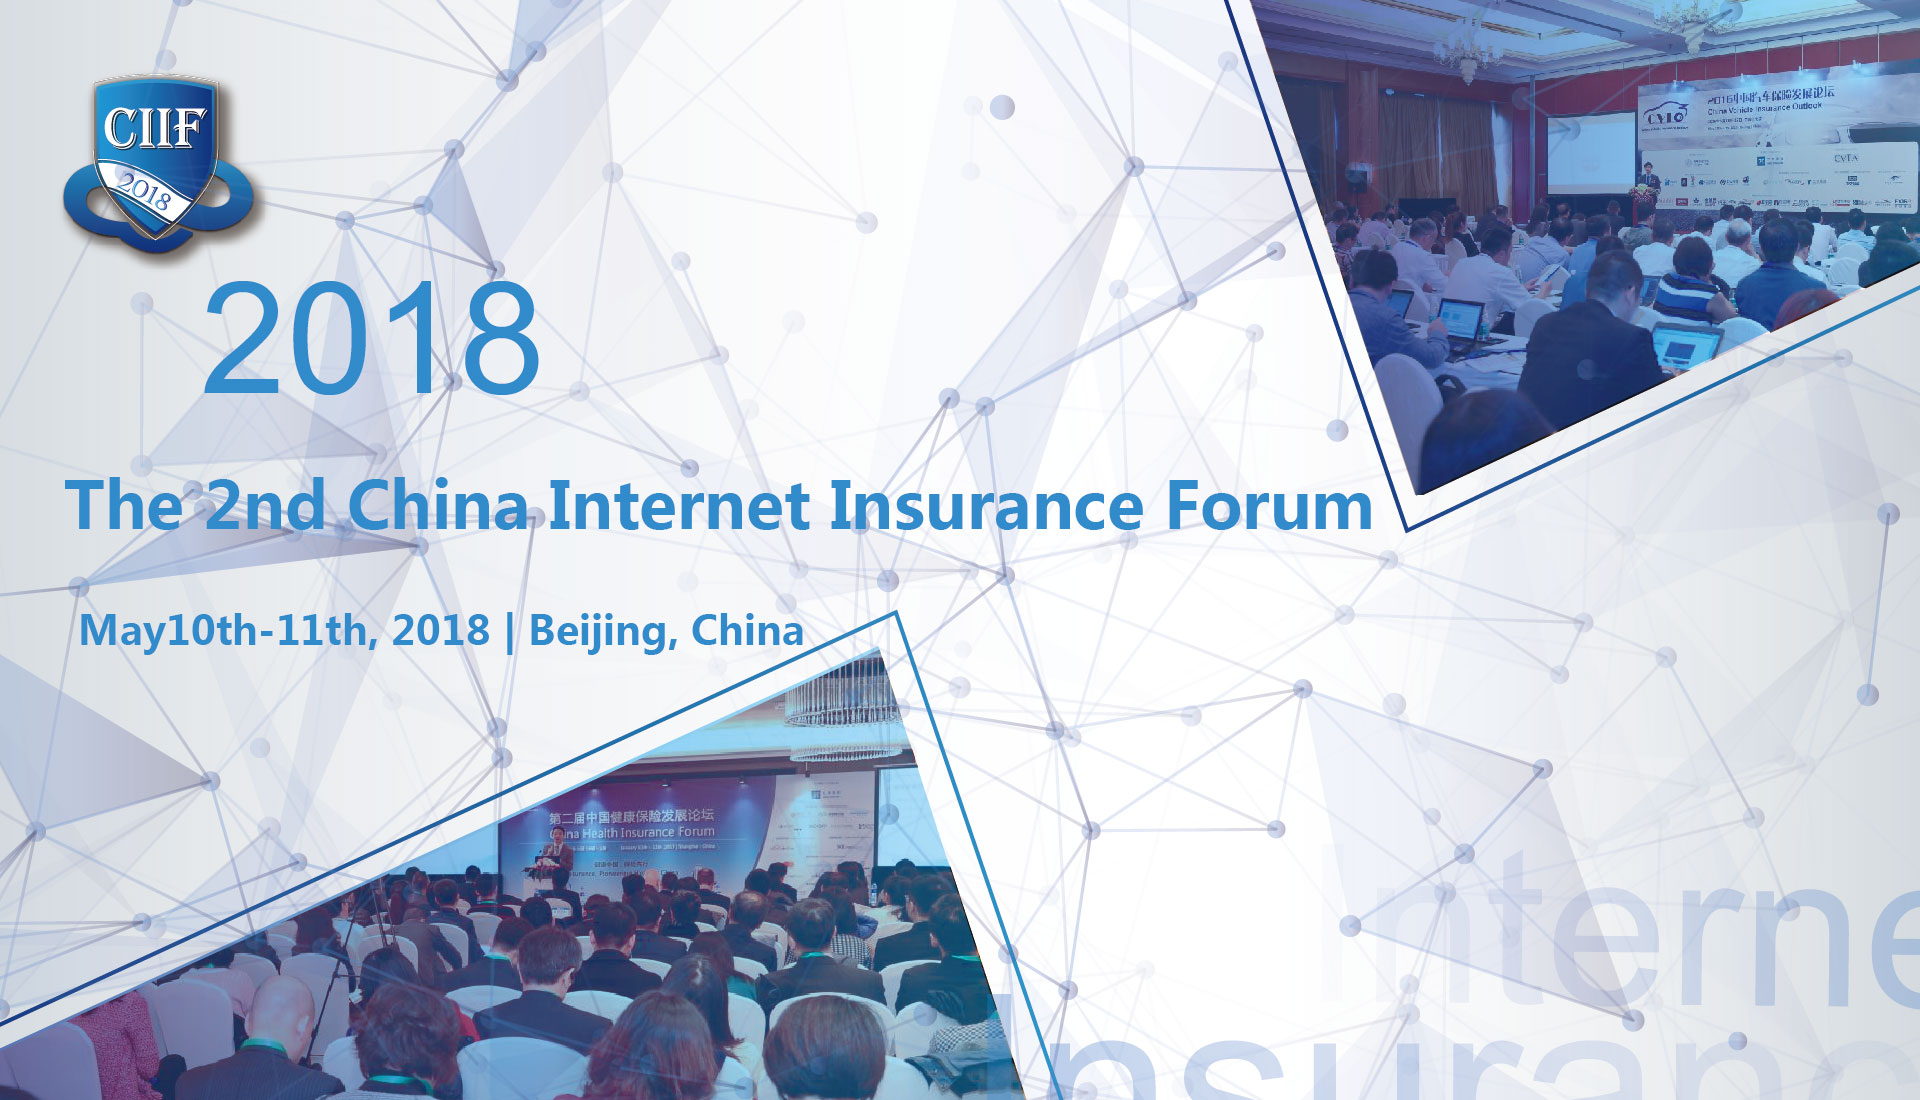 2018 The 2nd China Internet Insurance Forum  sc 1 st  Shine Consultant & The 2nd China Internet Insurance Forum - Finance u0026 Investment - May ...